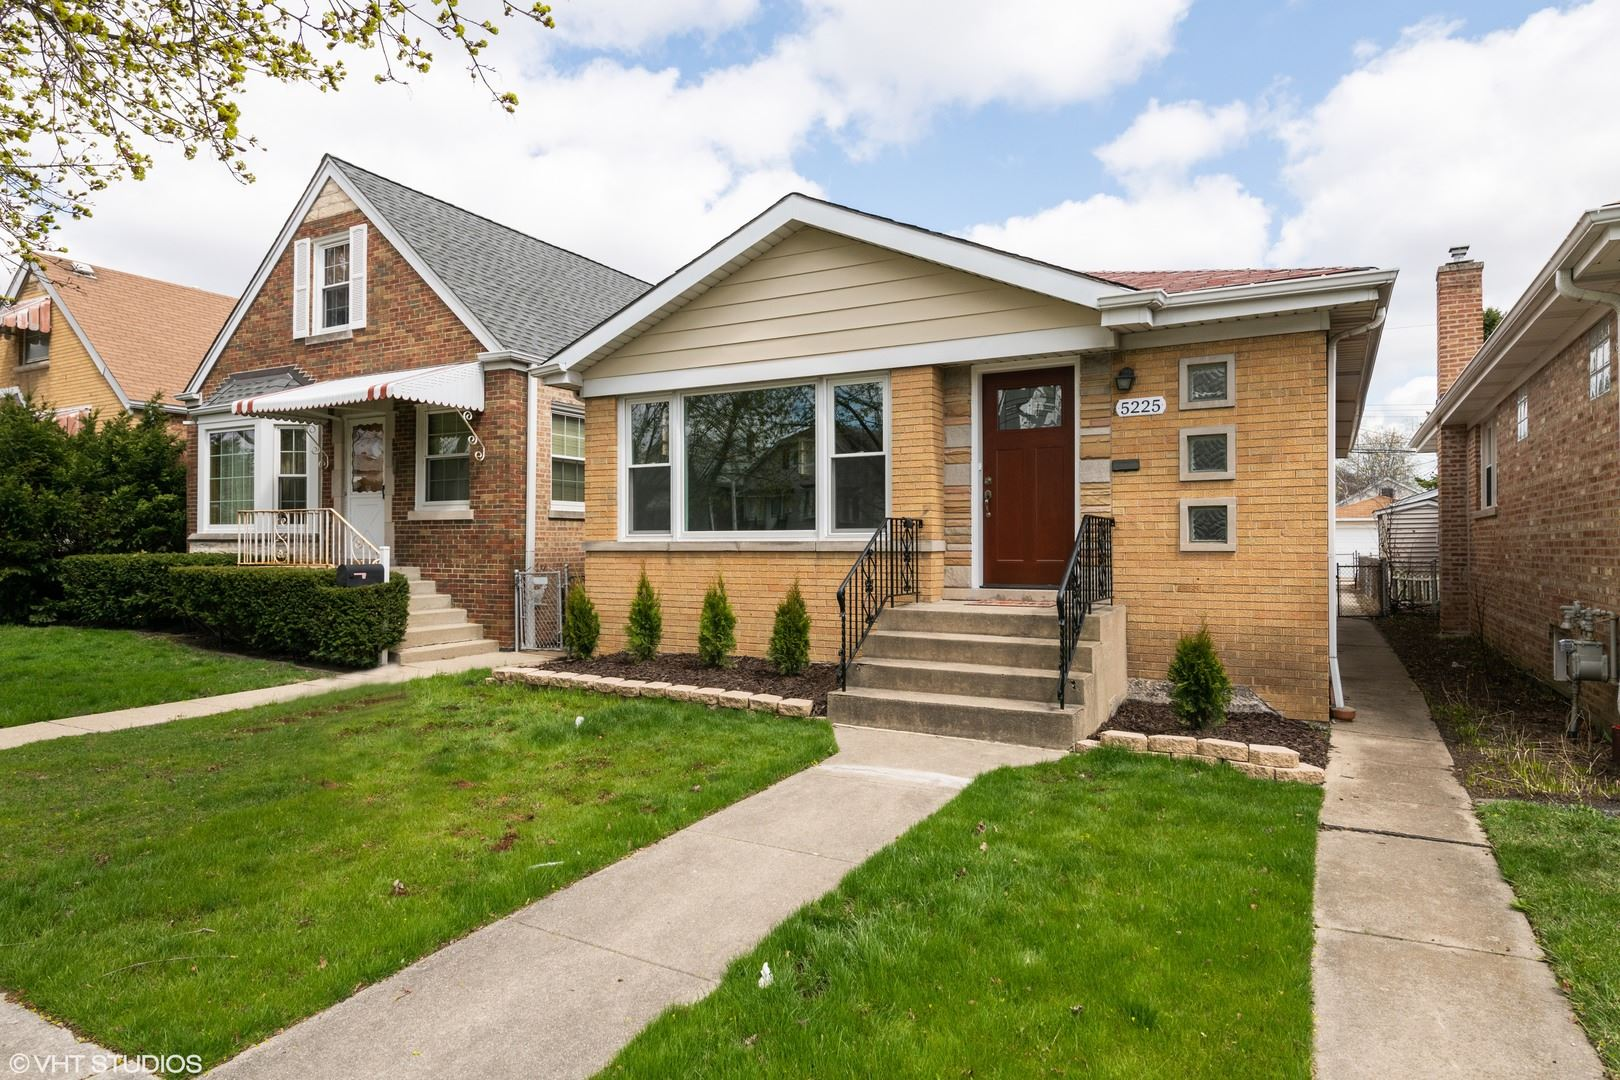 5225 N Melvina Avenue, Chicago, IL 60630 - #: 10643907